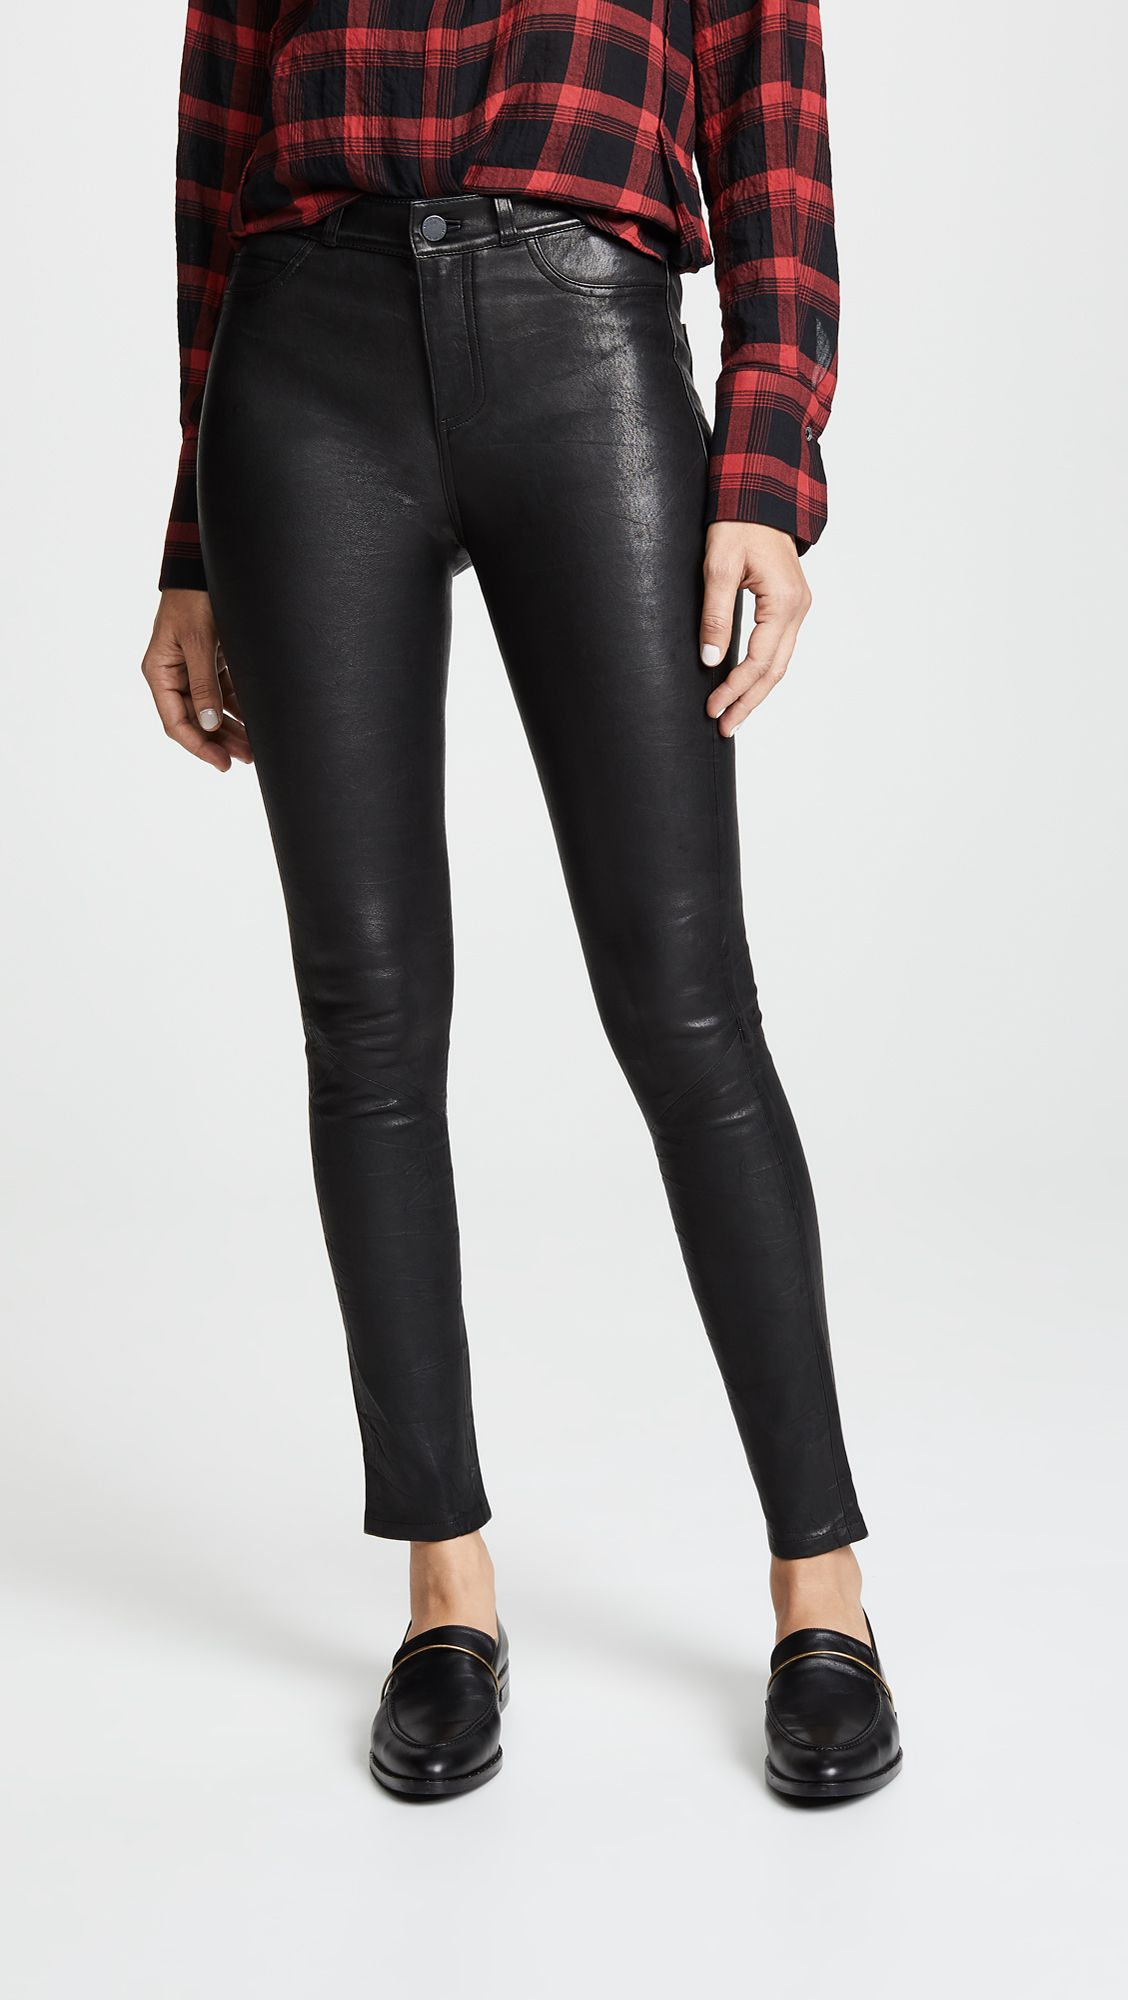 e41bfa1baaa97e Hoxton Stretch Leather Pants in 2019 | The Best Skinny Pants To Buy ...